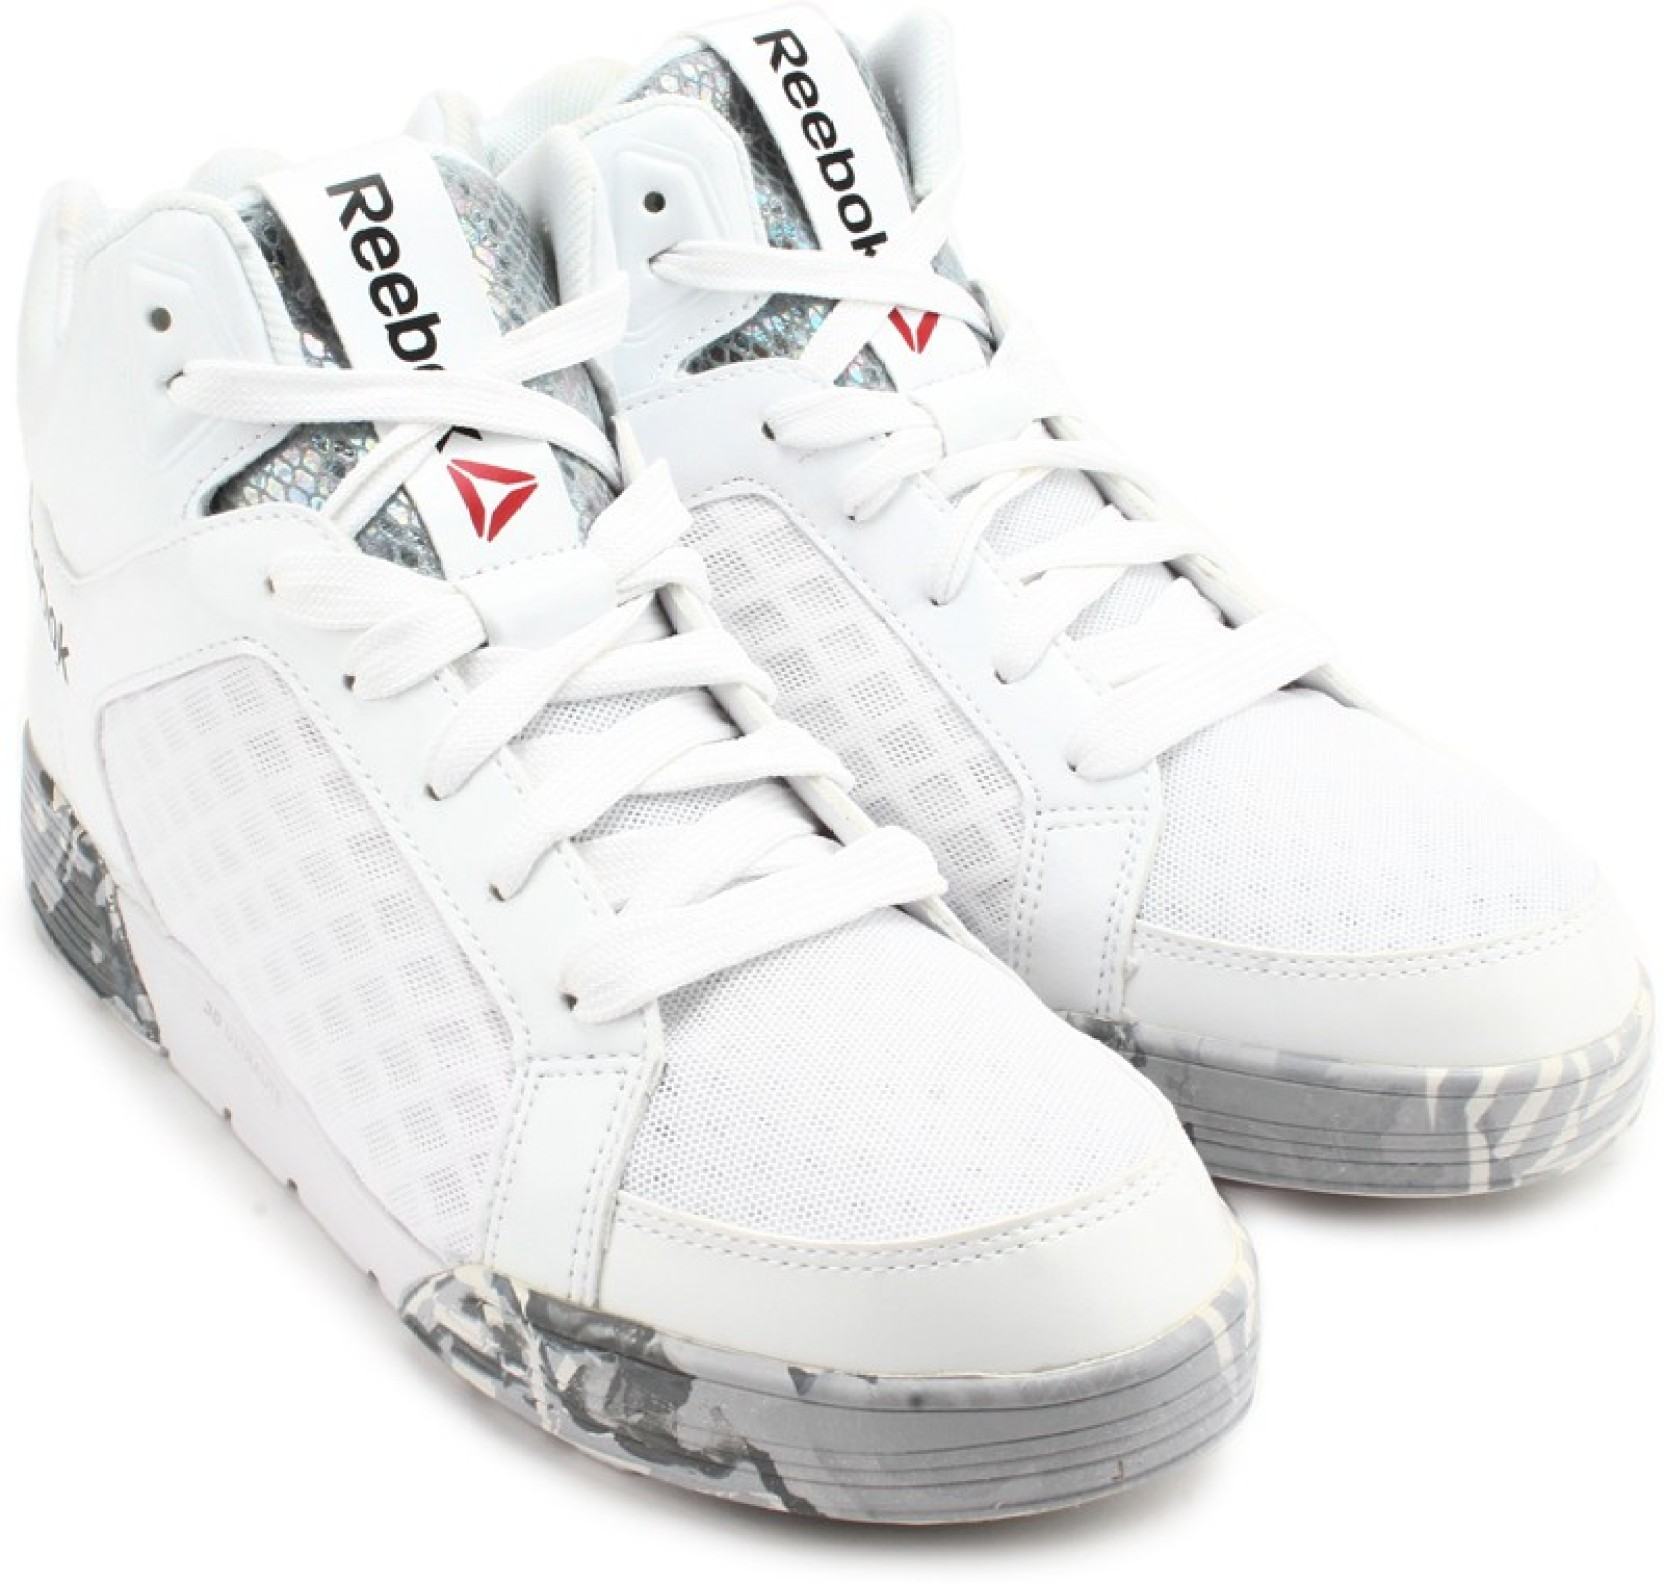 c3875a4c3f1 REEBOK Dance Urtempo Mid 2.0 Training   Gym Shoes For Women - Buy ...